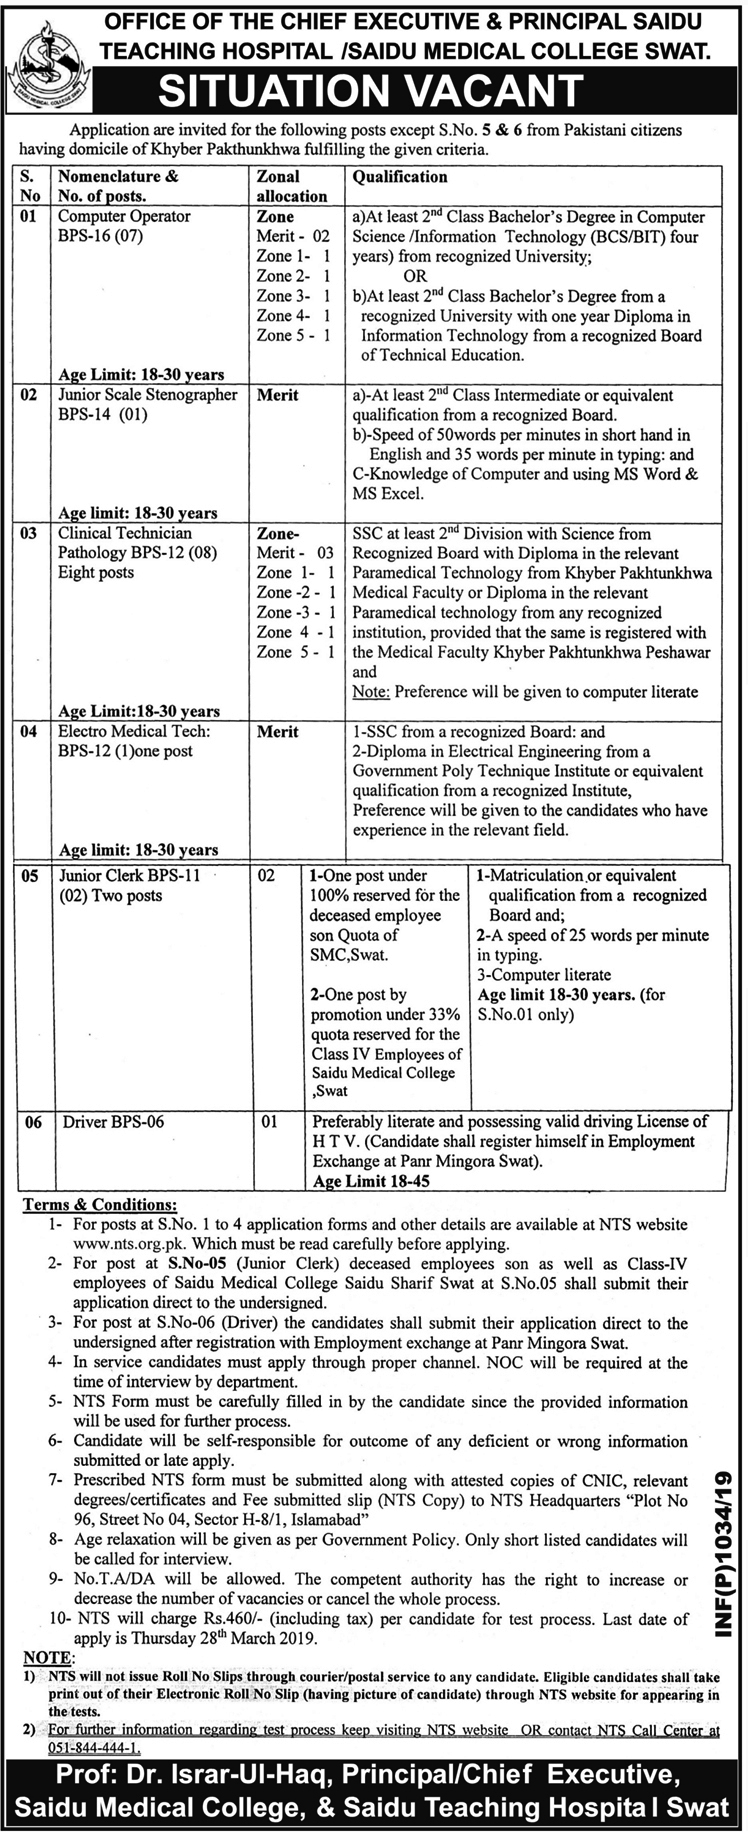 SMC Saidu Teaching Medical College Saidu Sharif Swat Jobs Via NTS